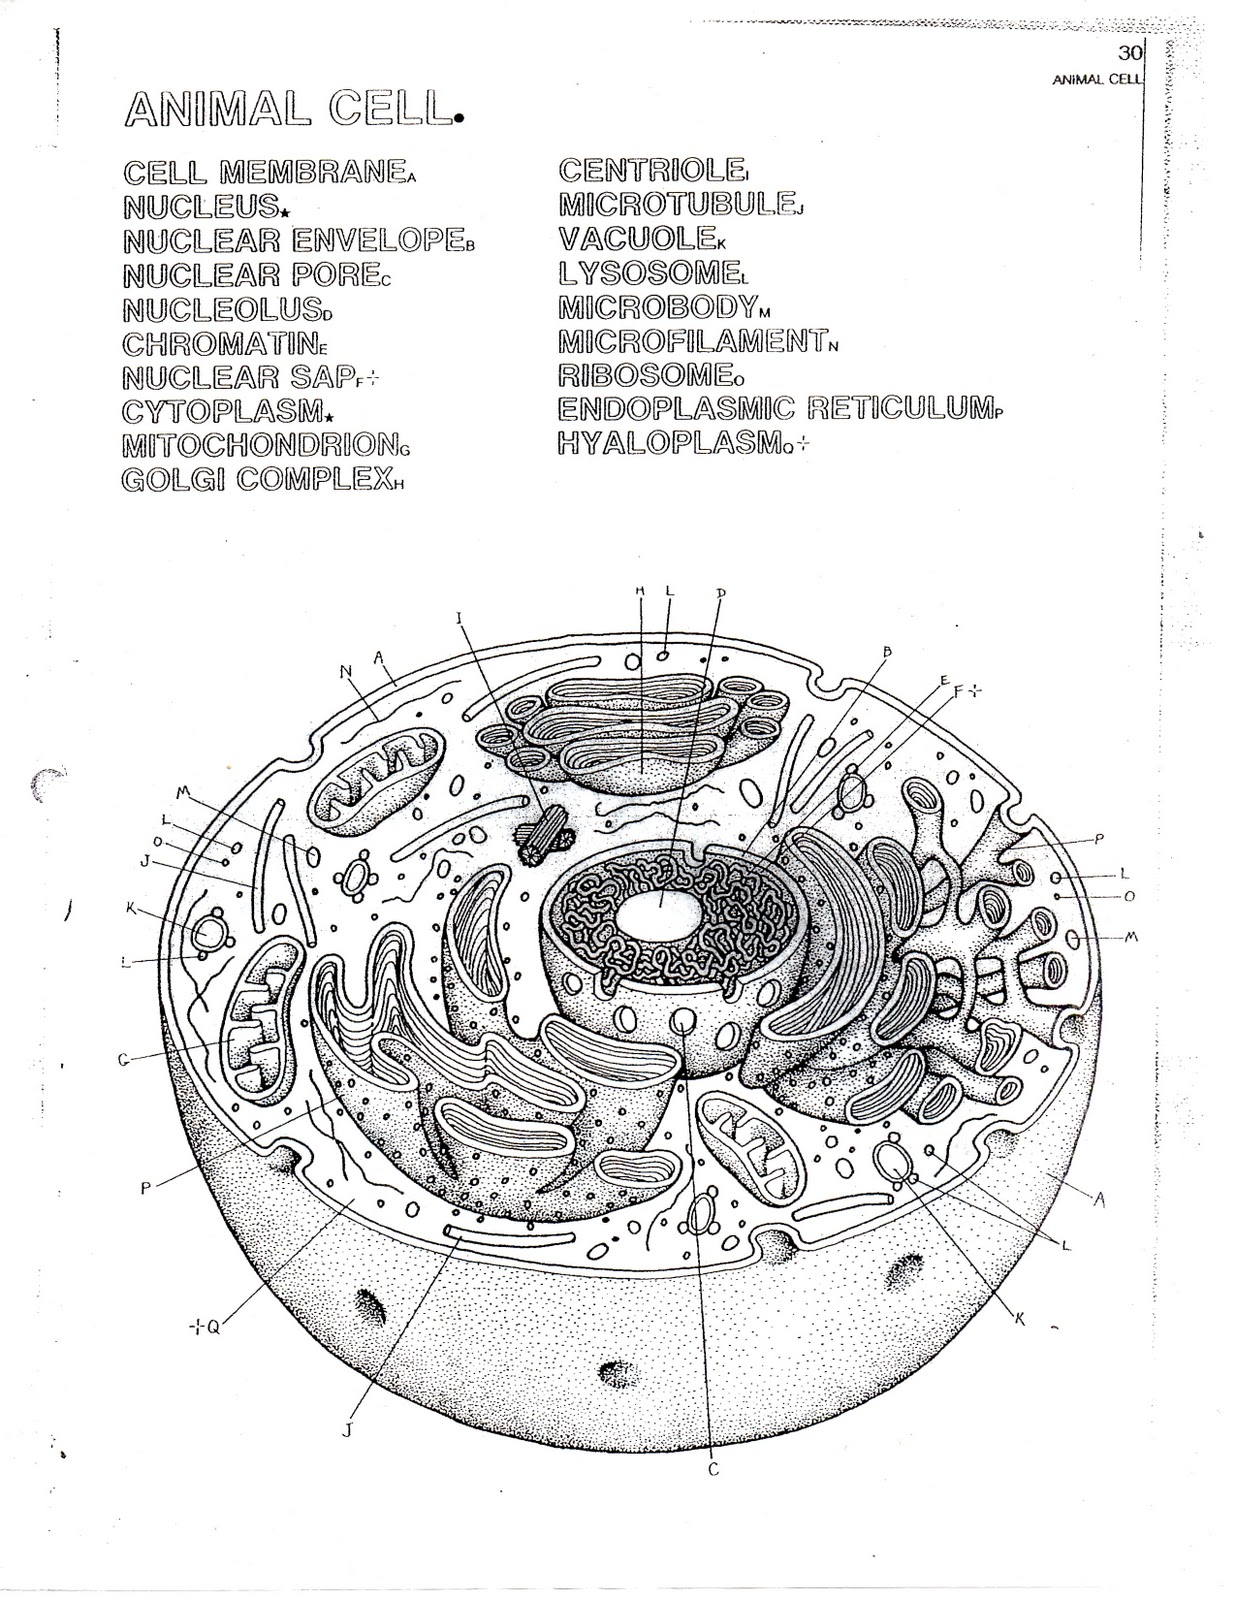 animal cell diagram no labels headphone jack pinout female the bioblog bio sheets 1 6 basic units of life